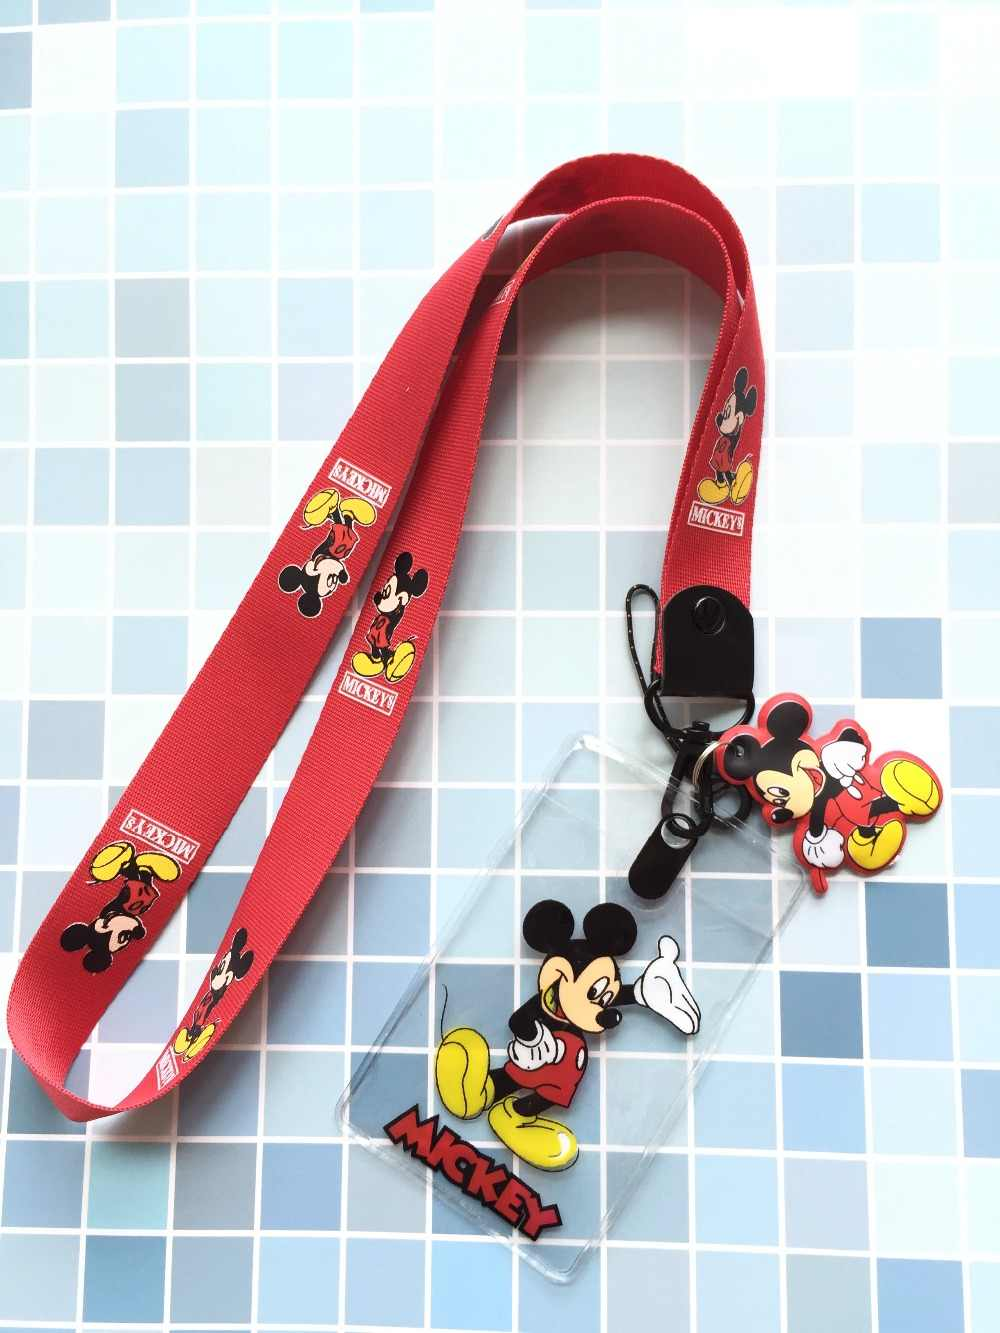 New 1 pcs Cartoon mickey Lanyard Key Chains Pendant party Gifts Neck Strap Card Bus ID Holders Identity Badge Lanyard